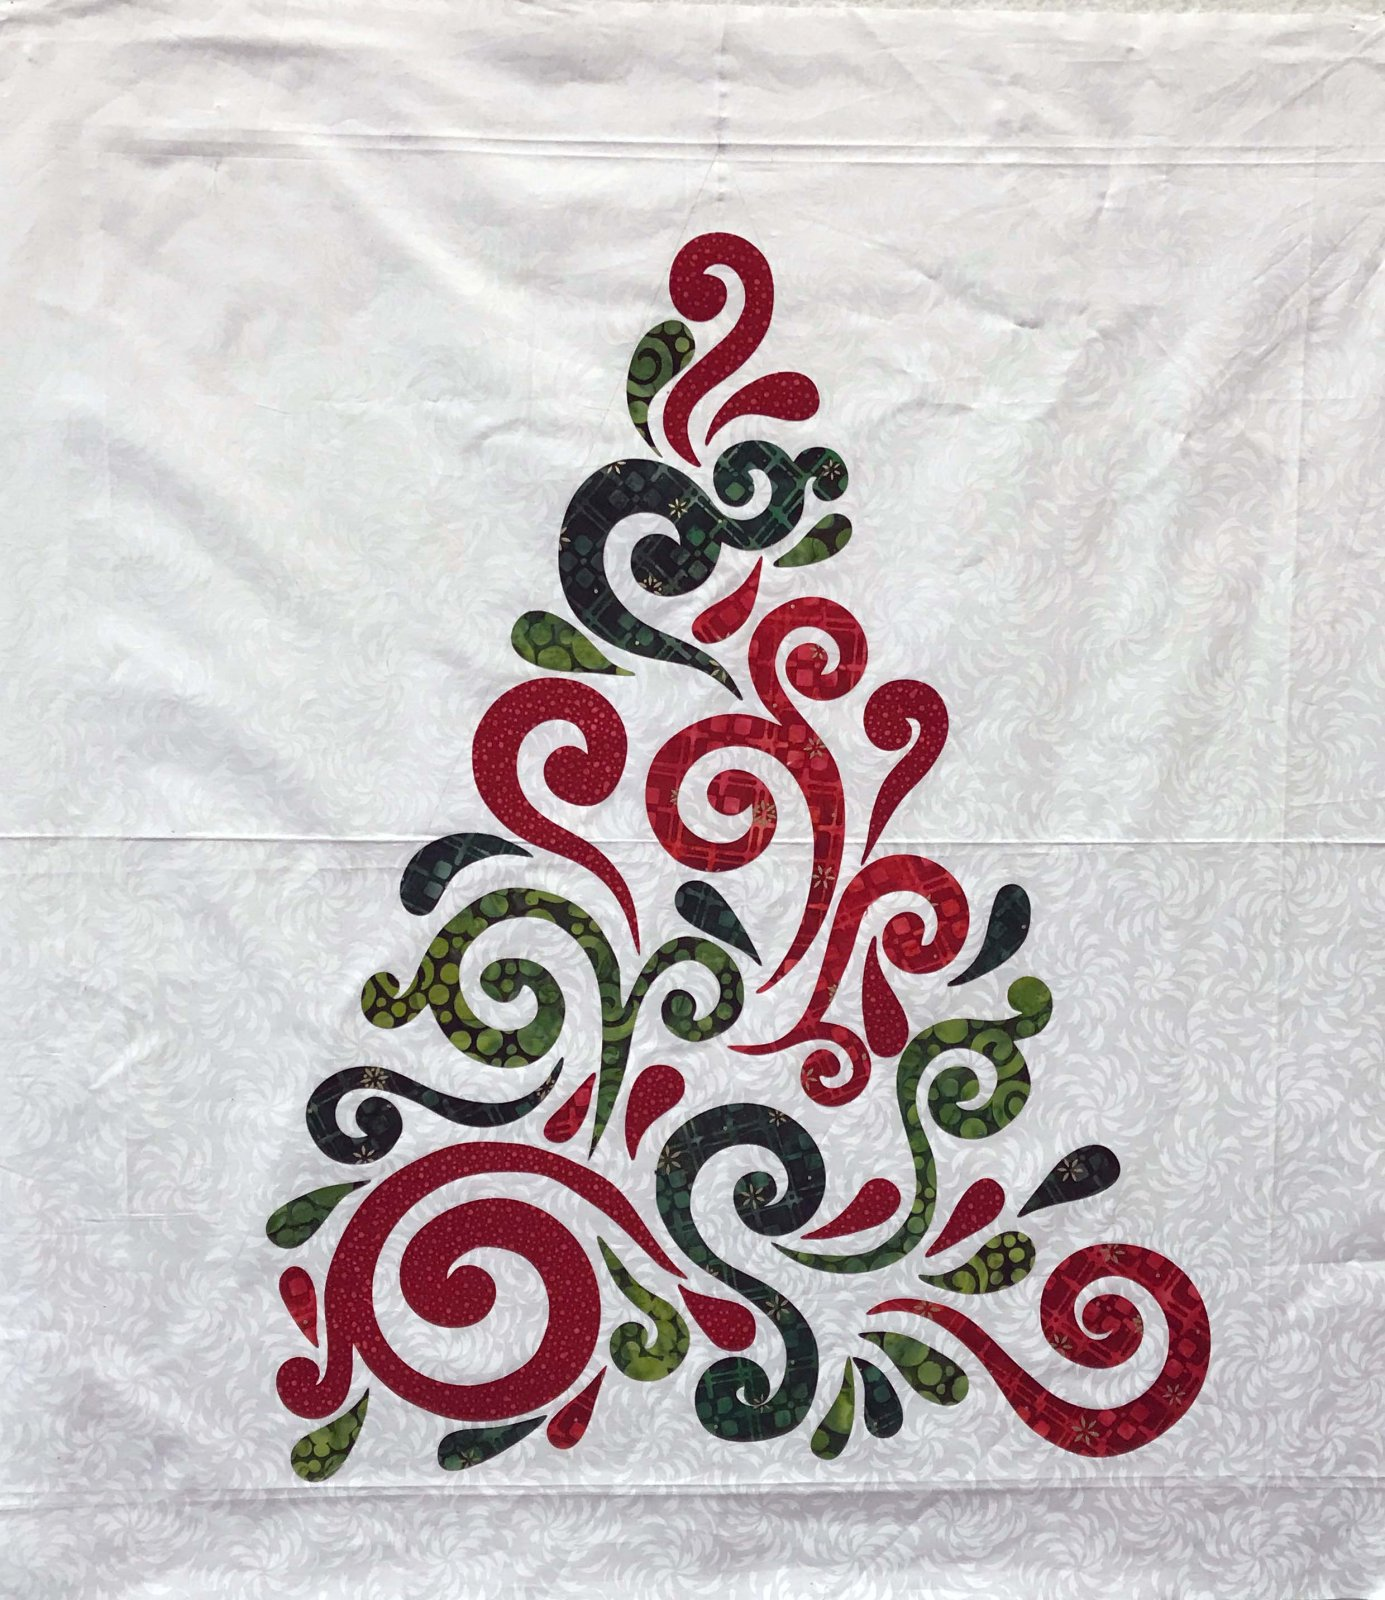 Swirled Christmas Tree Kit